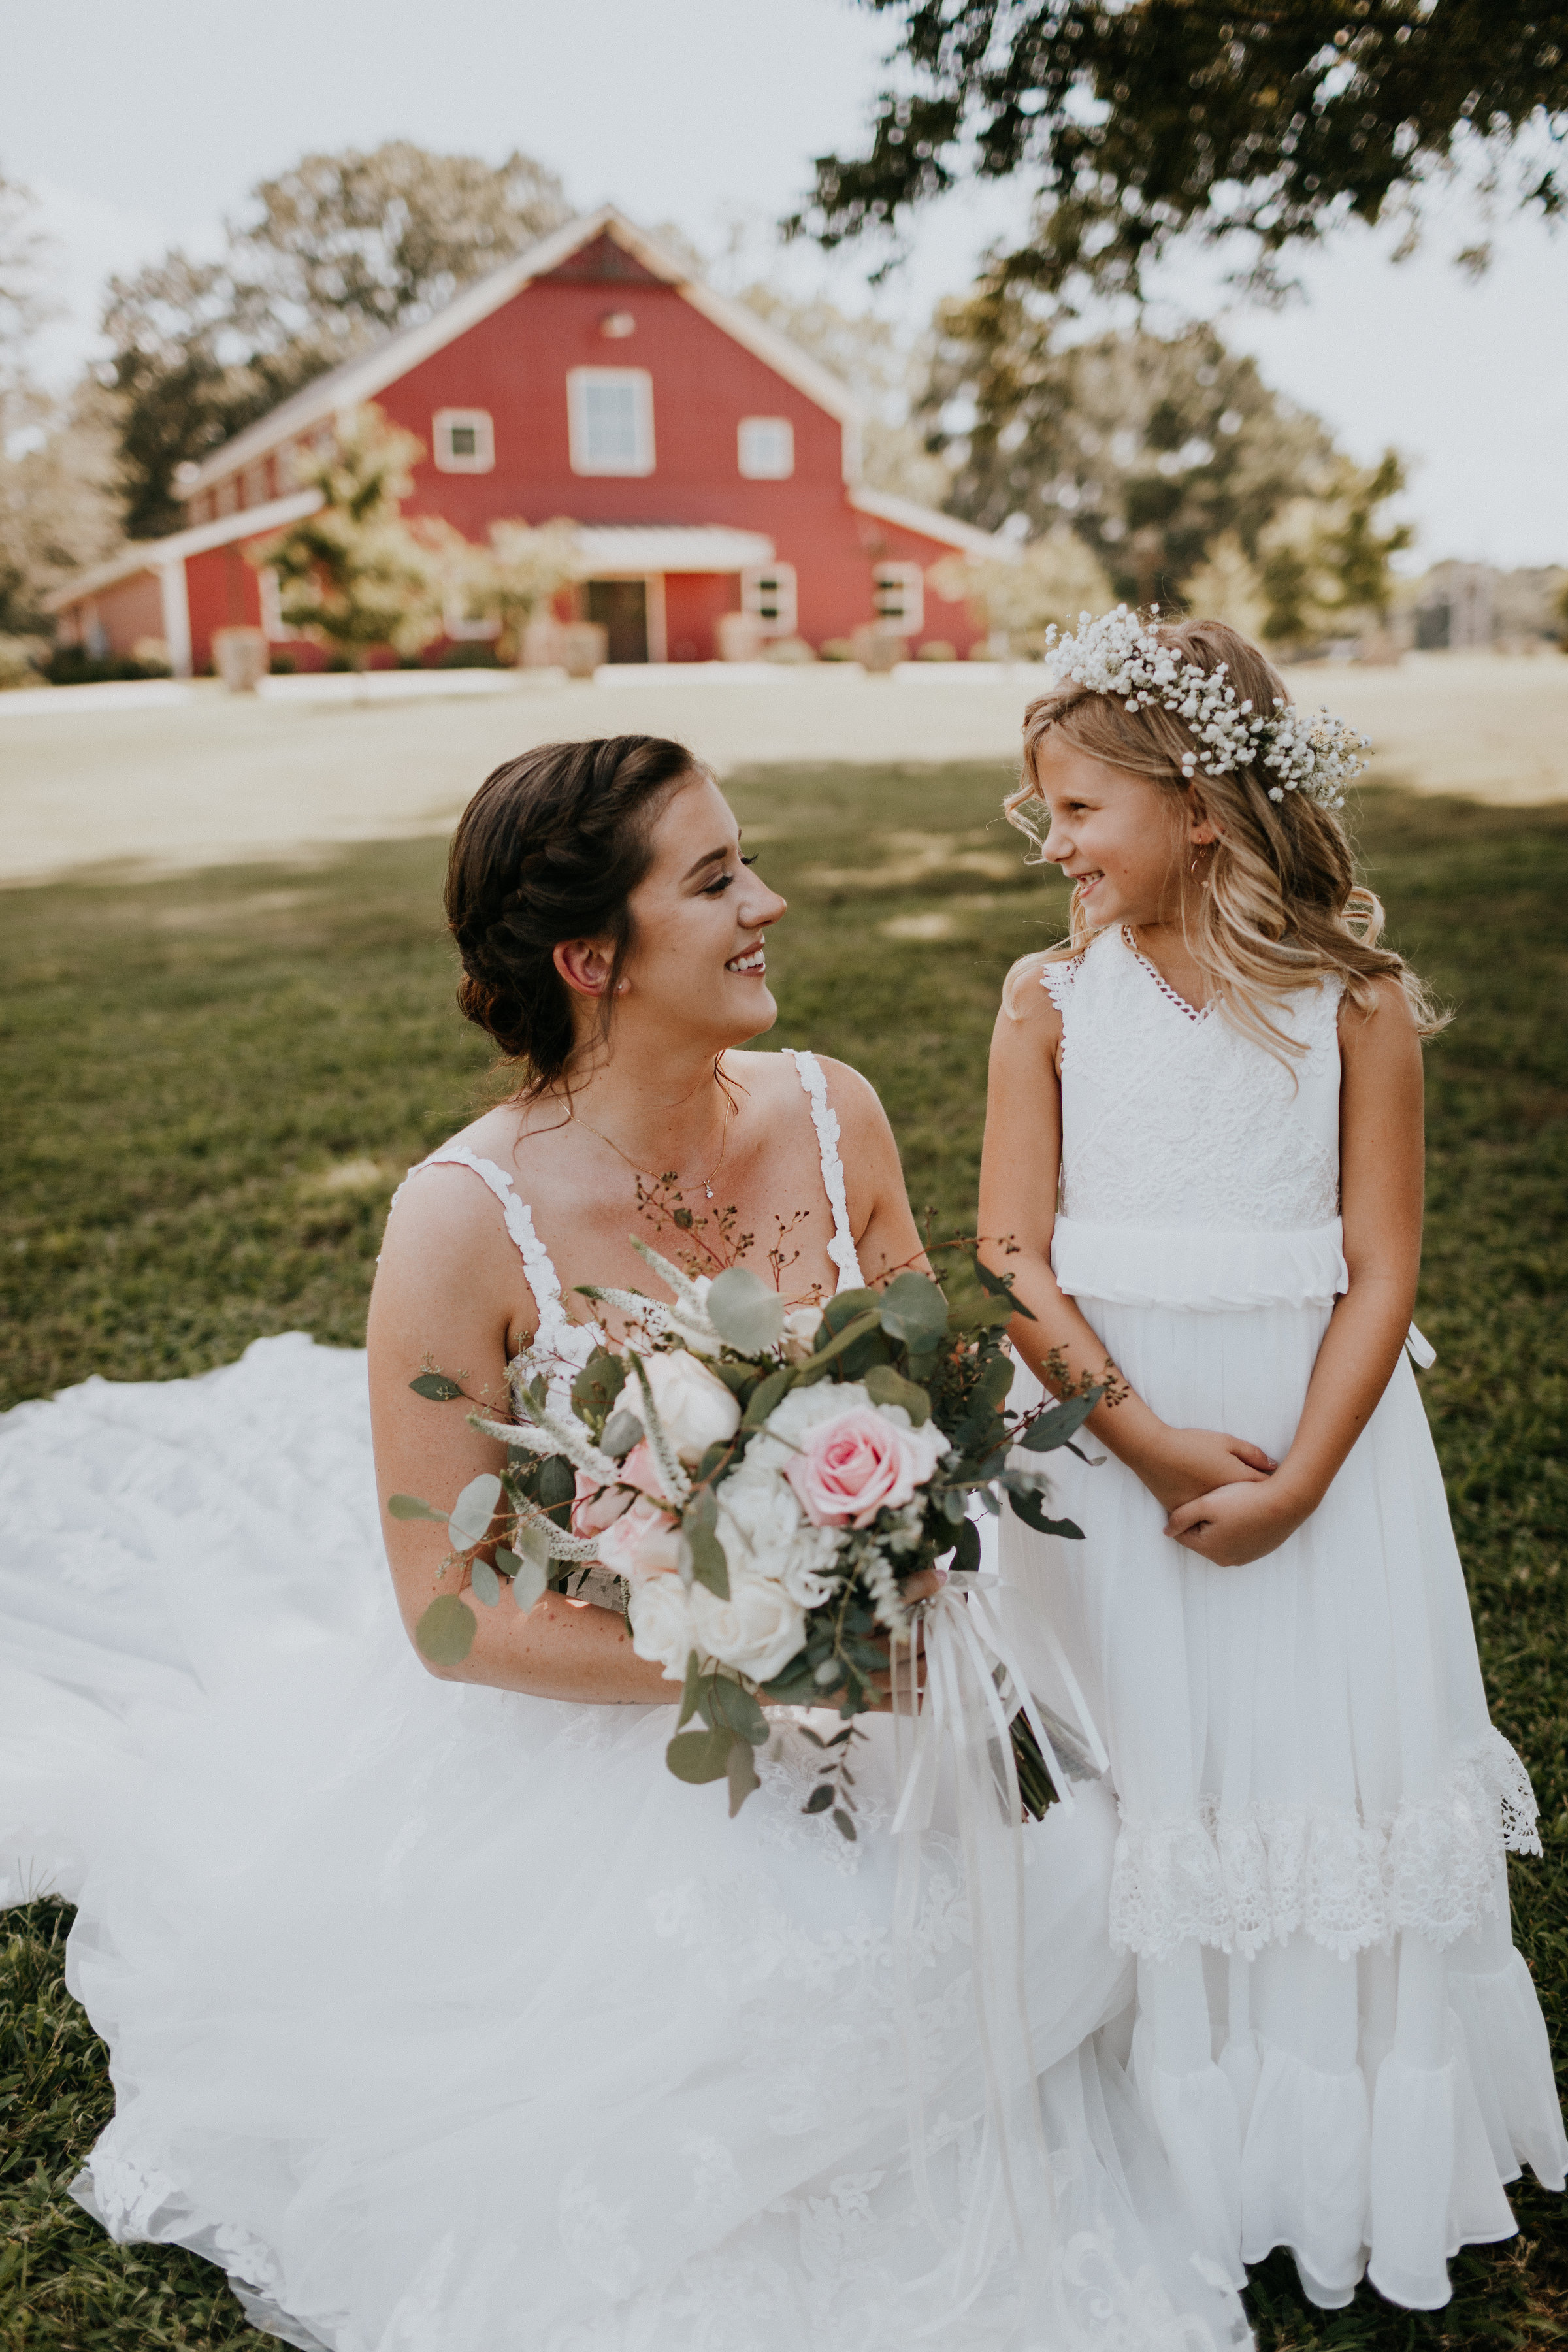 Kids at weddings can make for adorable pictures. pc: Brooke Miller Photography